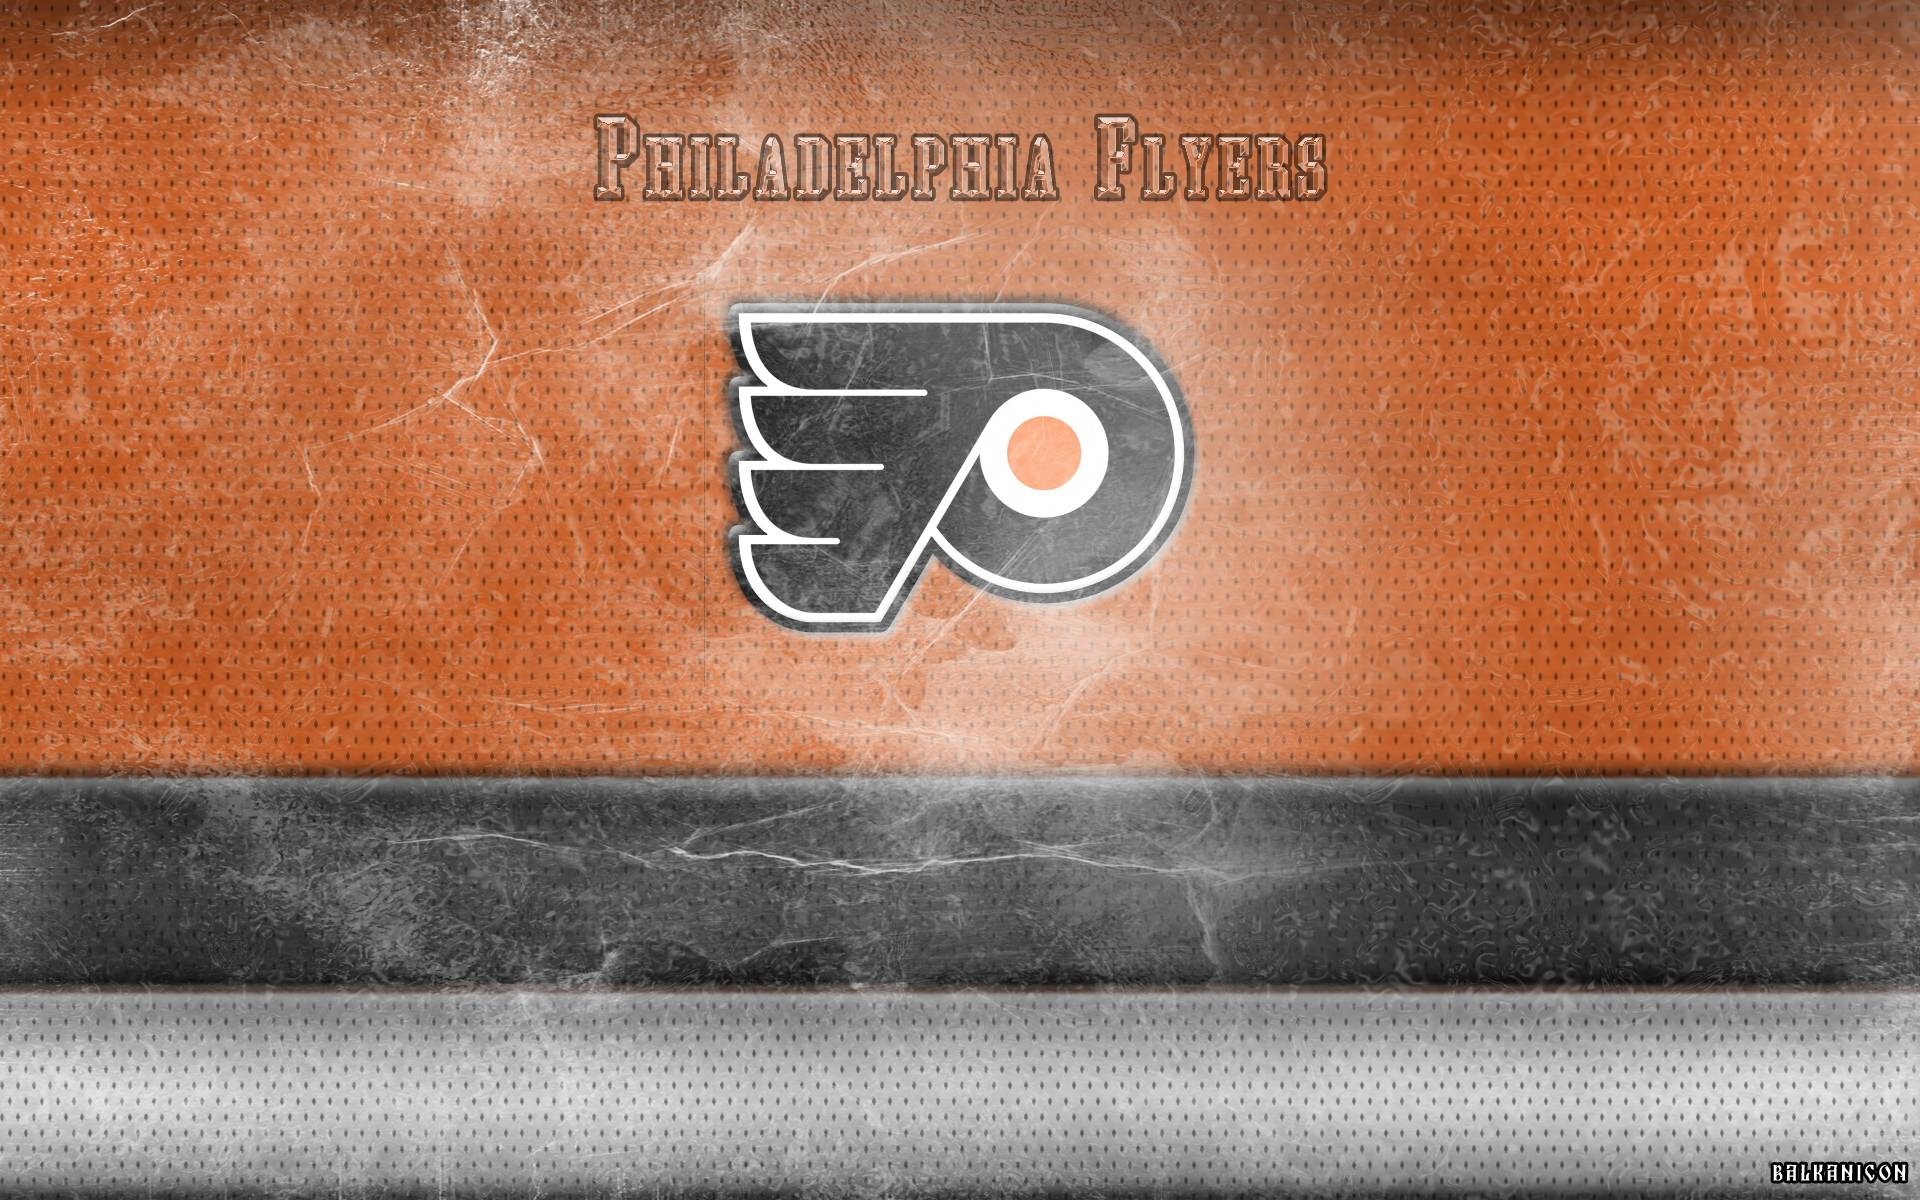 philadelphia flyers wallpaper by balkanicon on deviantart